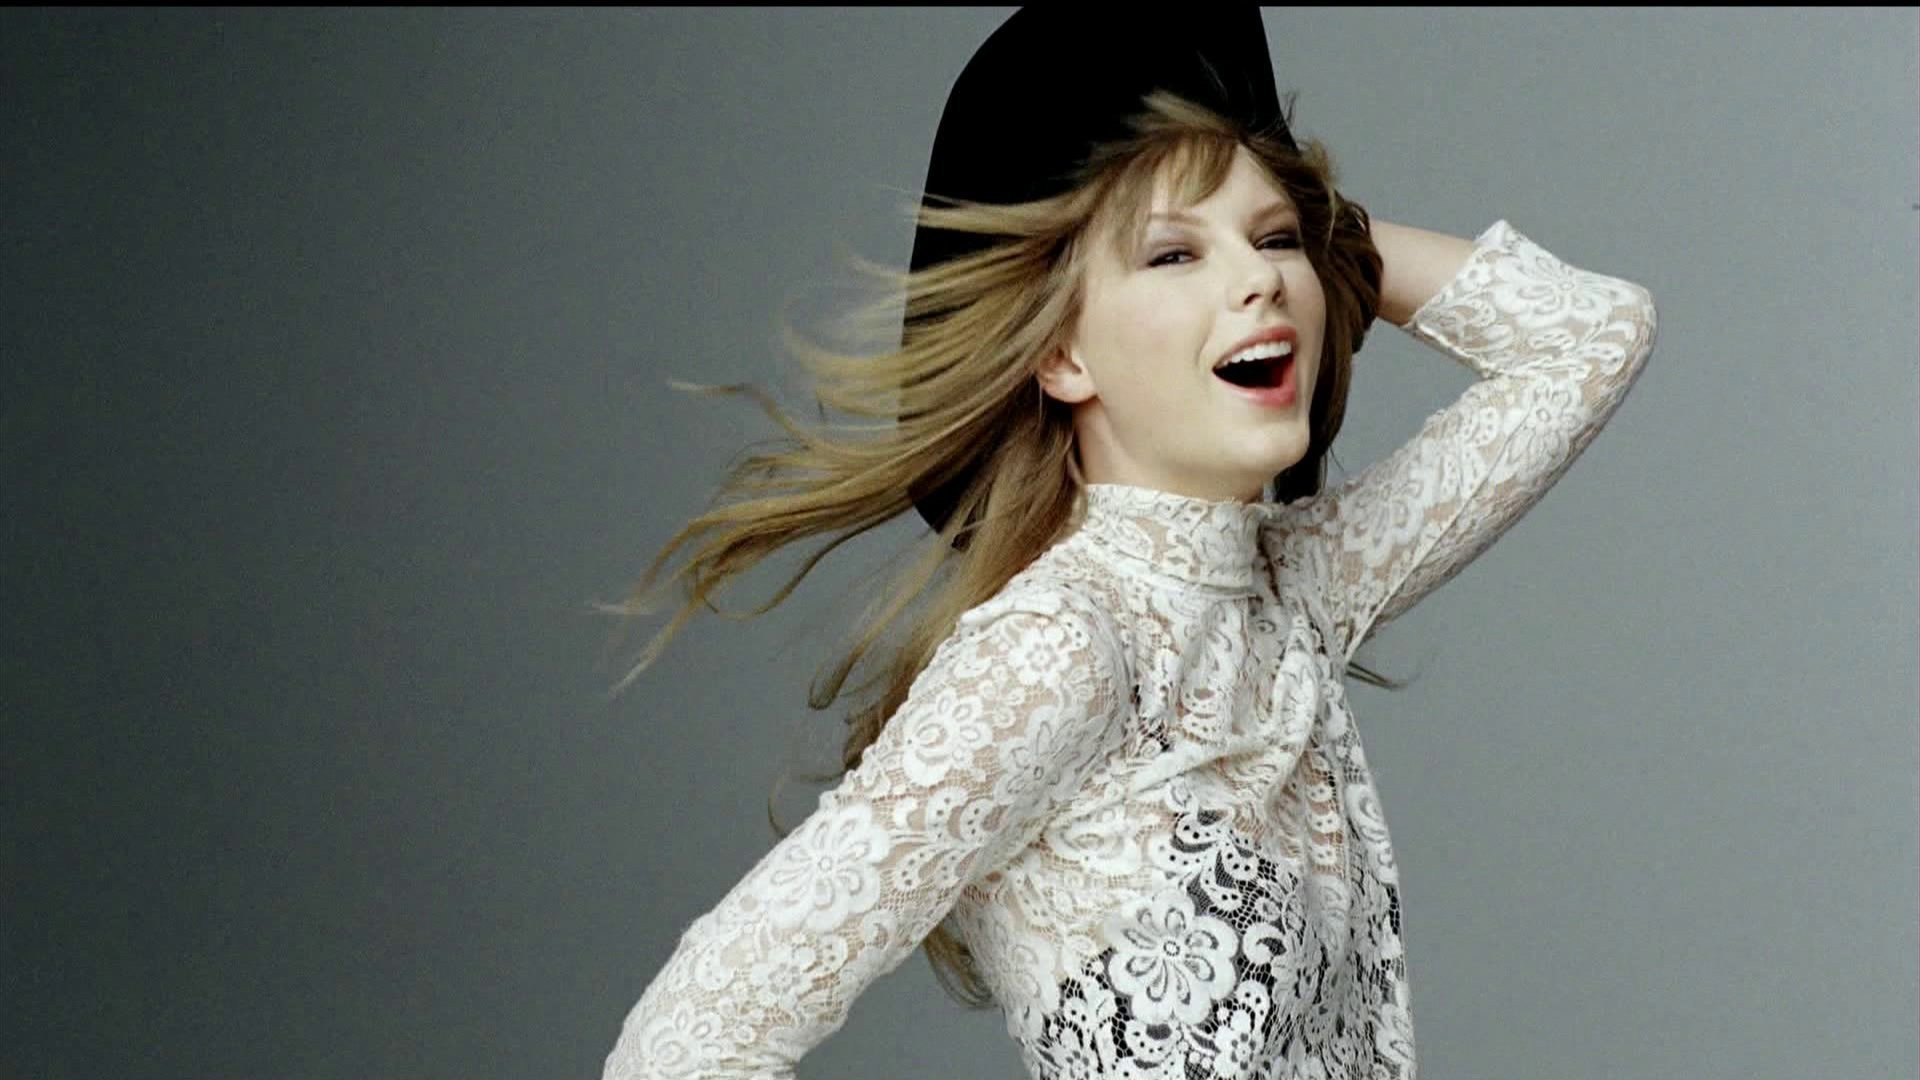 Taylor Swift cowgirl wallpapers and images   wallpapers 1920x1080